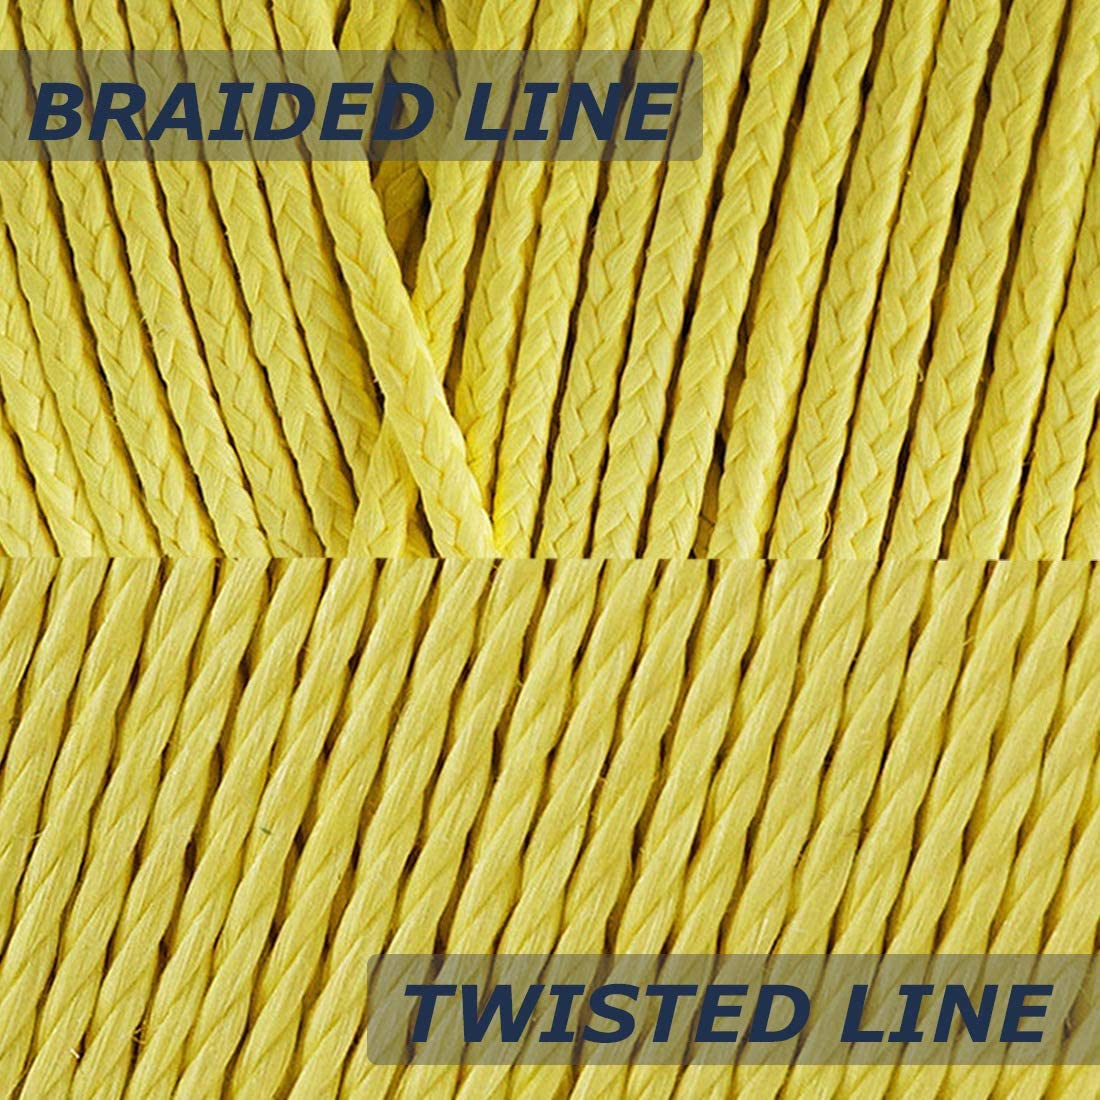 70lb 1000ft Twisted Kevlar Line Cut Resistant Fishing Line Kite Flying Camping